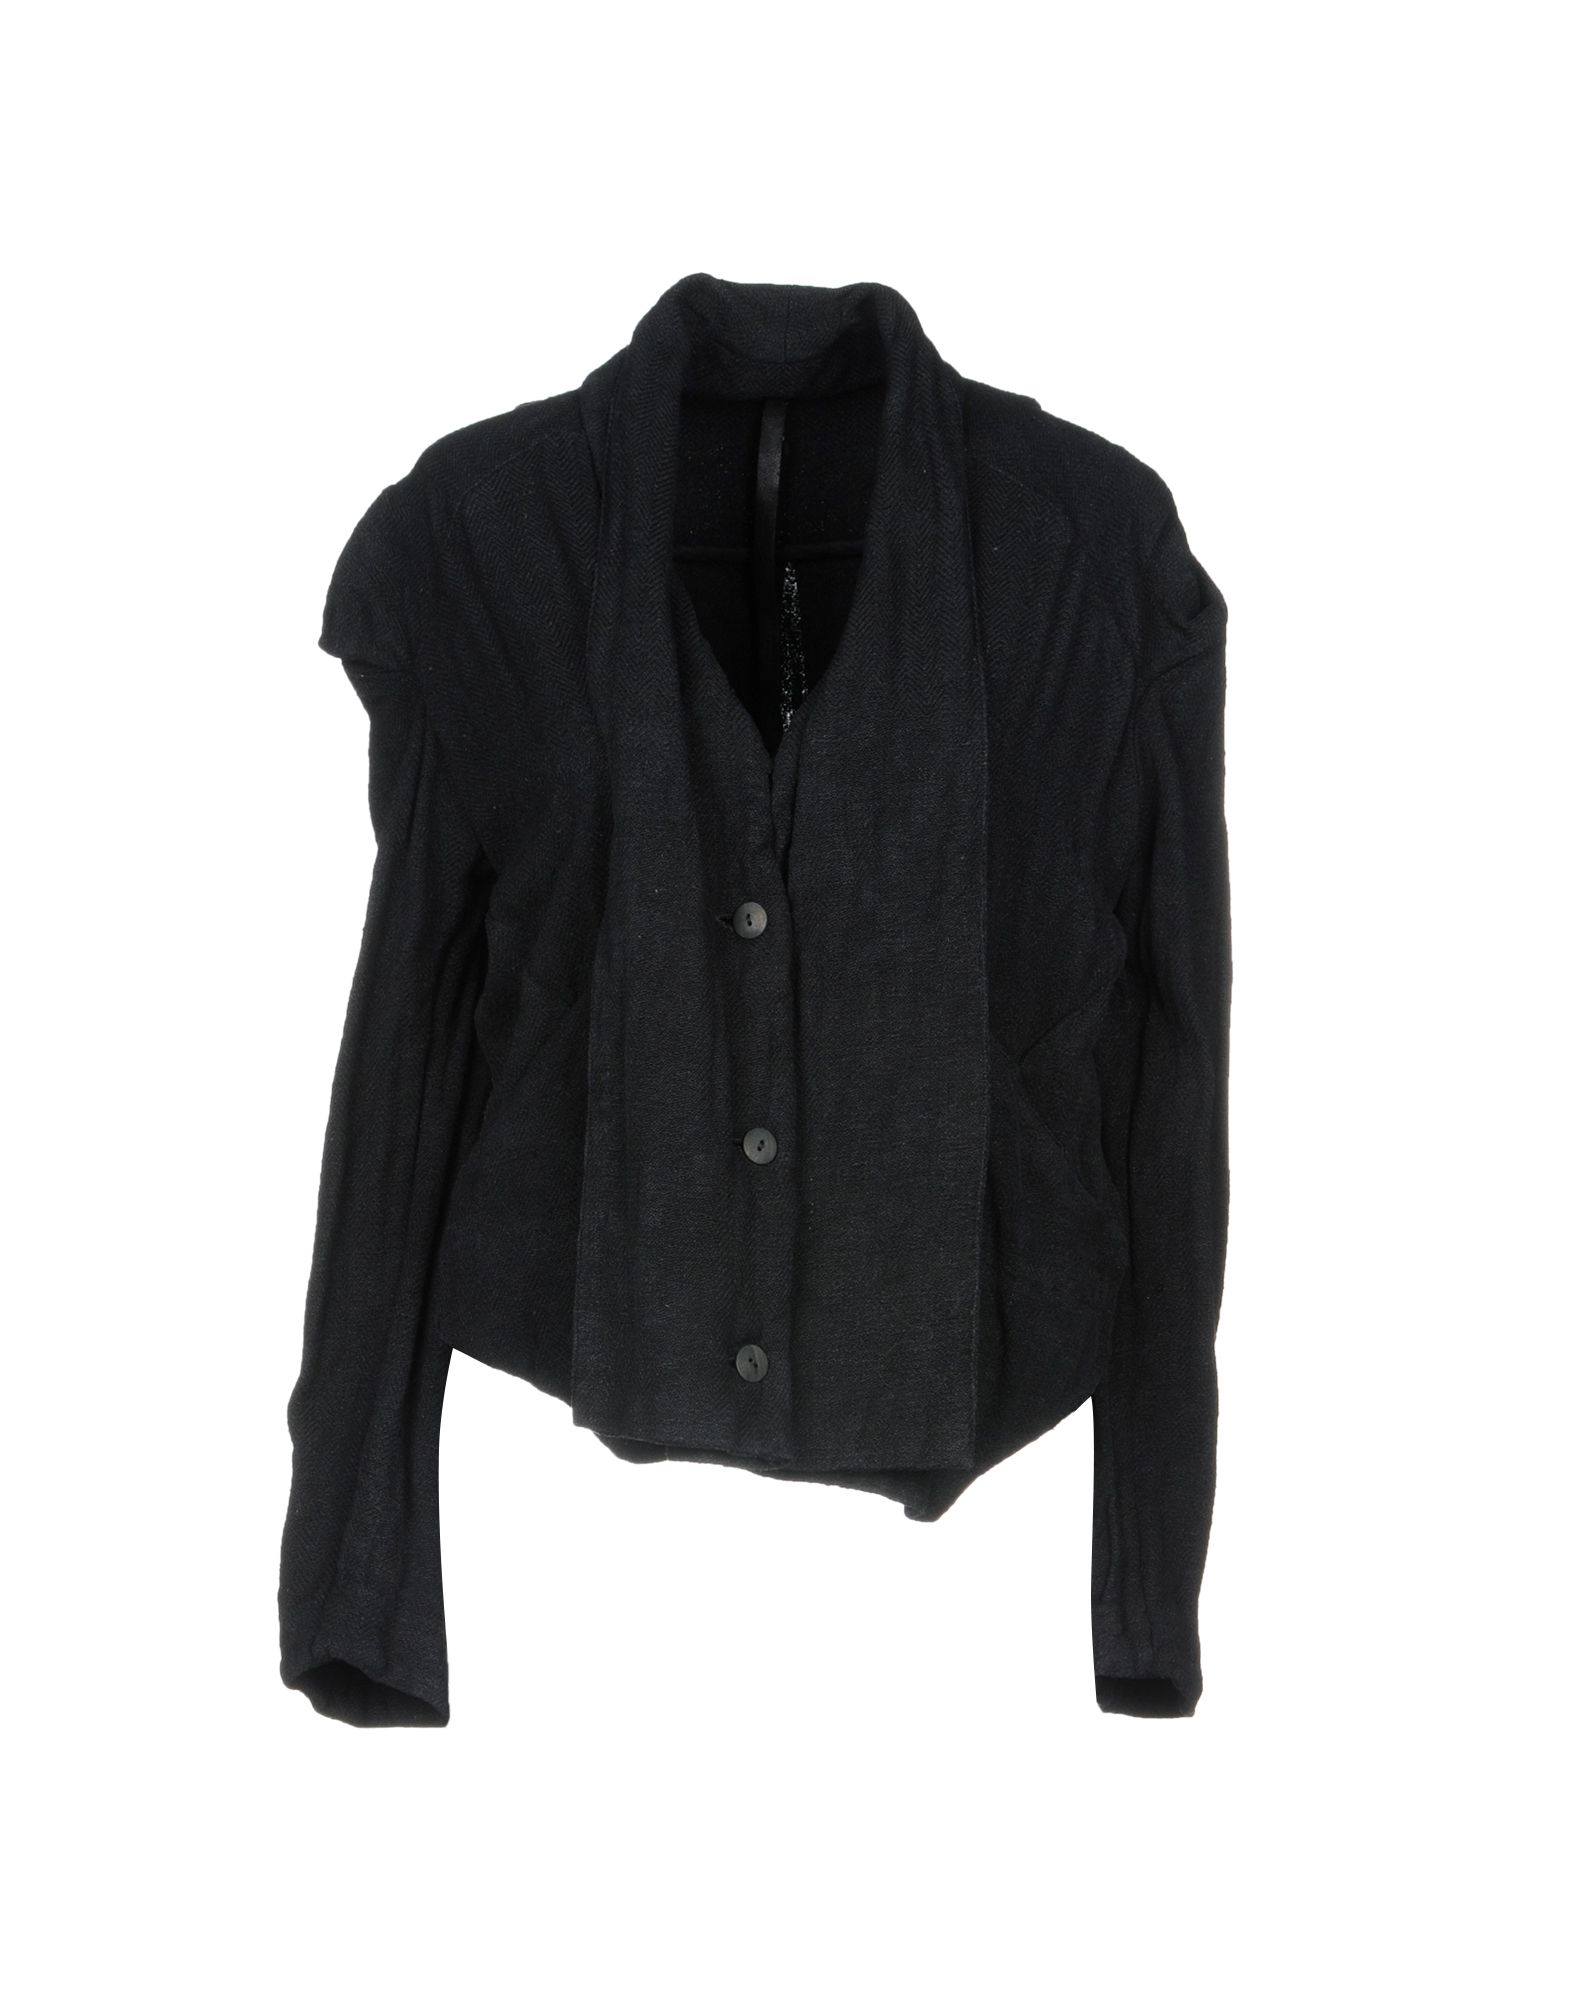 BARBARA I GONGINI Blazer in Black